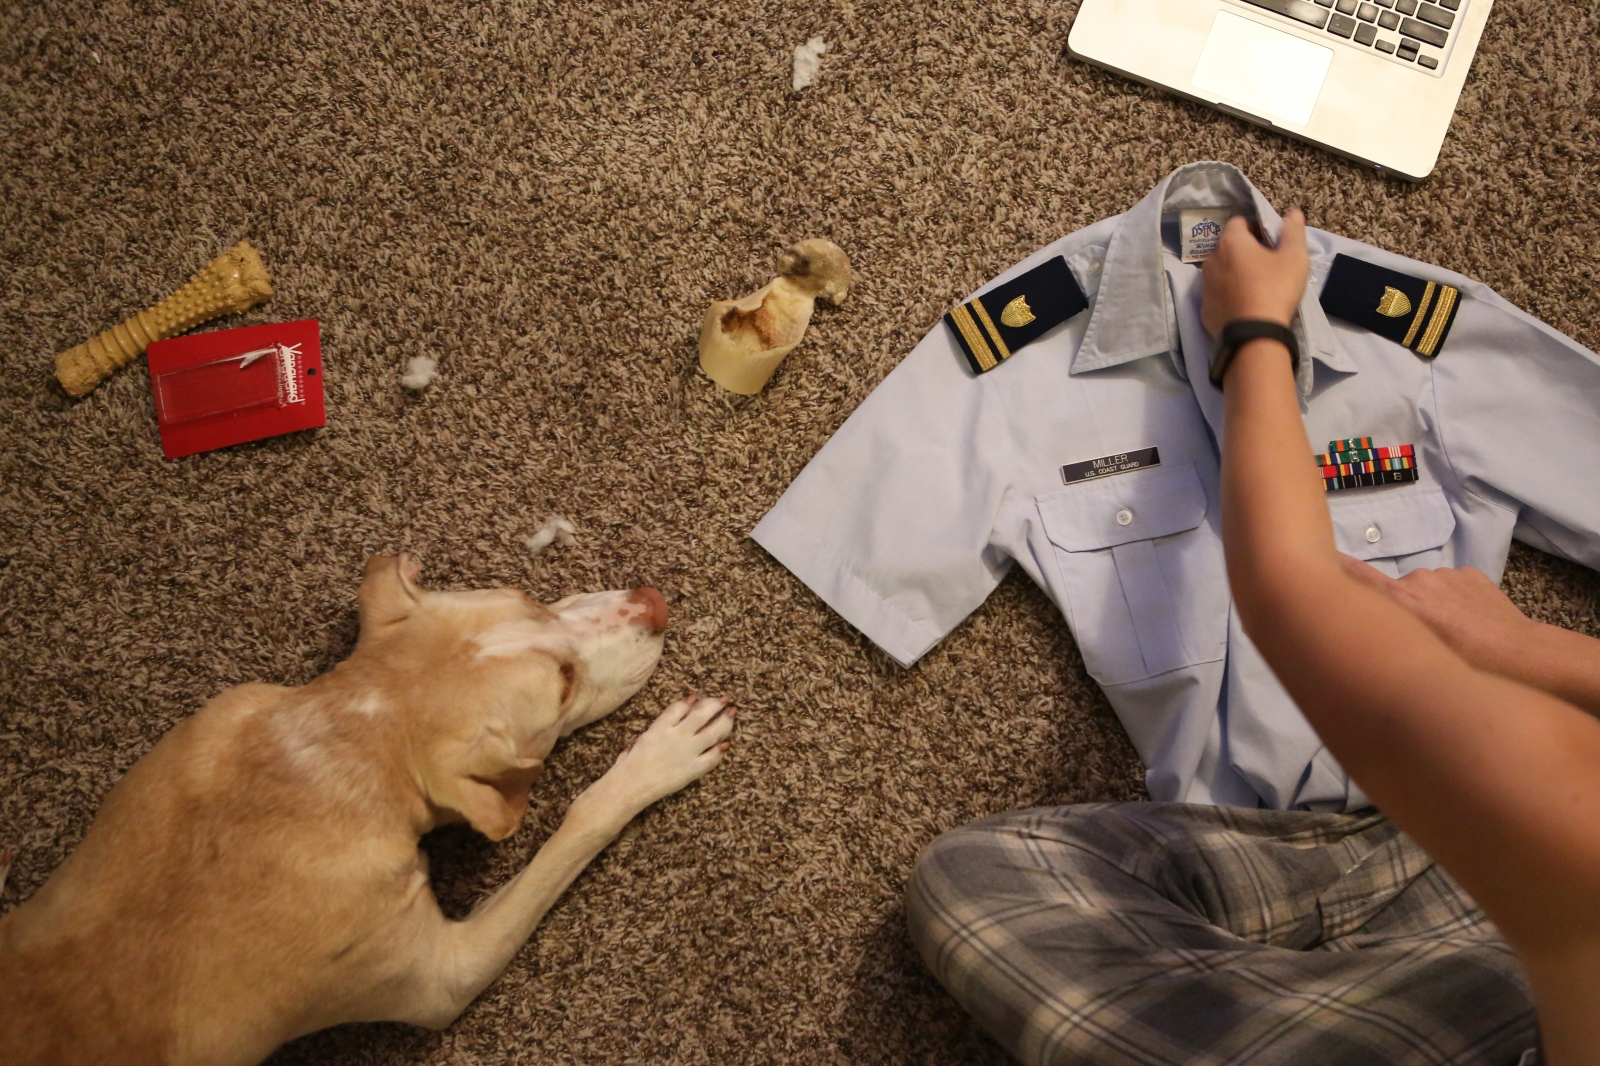 Taylor prepares her uniform the night before her promotion ceremony while her dog, Sunny, dutifully lies at her side in Long Beach, Calif on January 8, 2017.